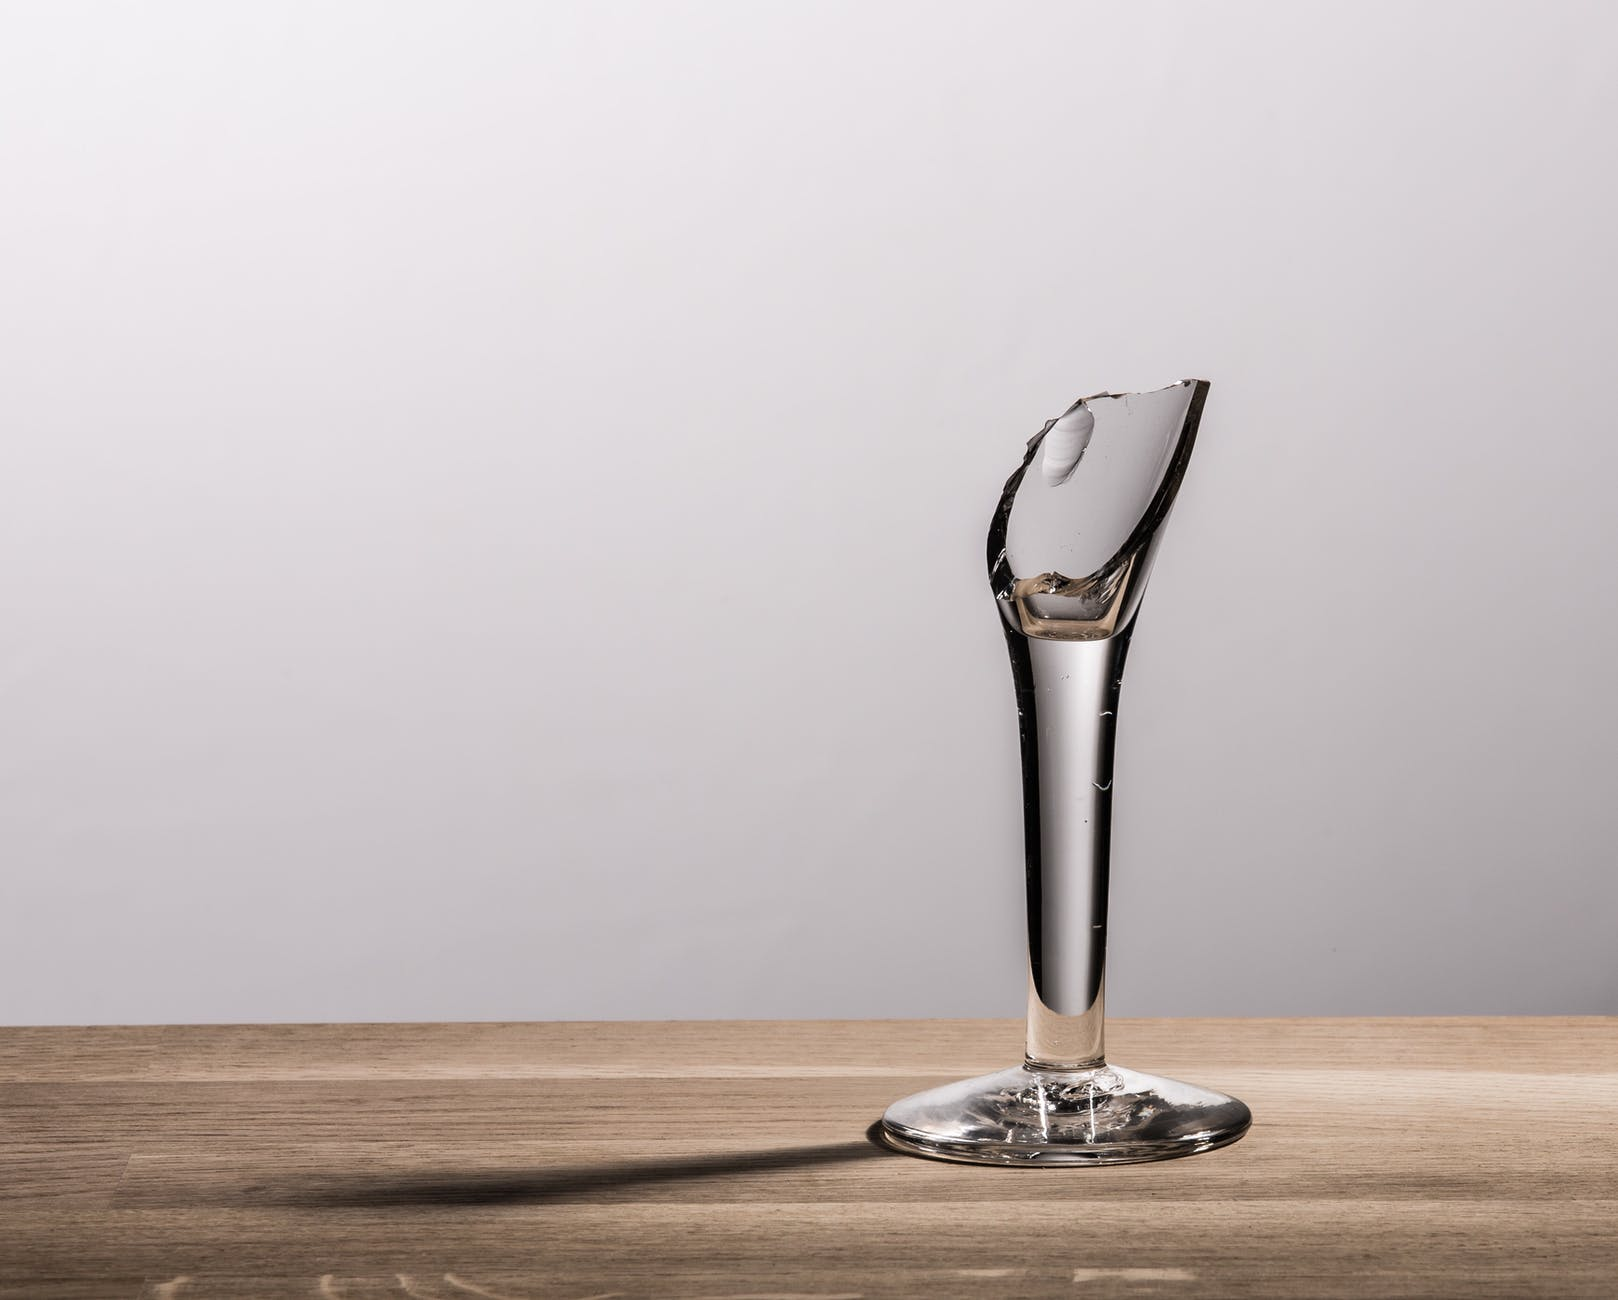 Denise accidentally broke some wine glasses and got punished. | Source: Pexels